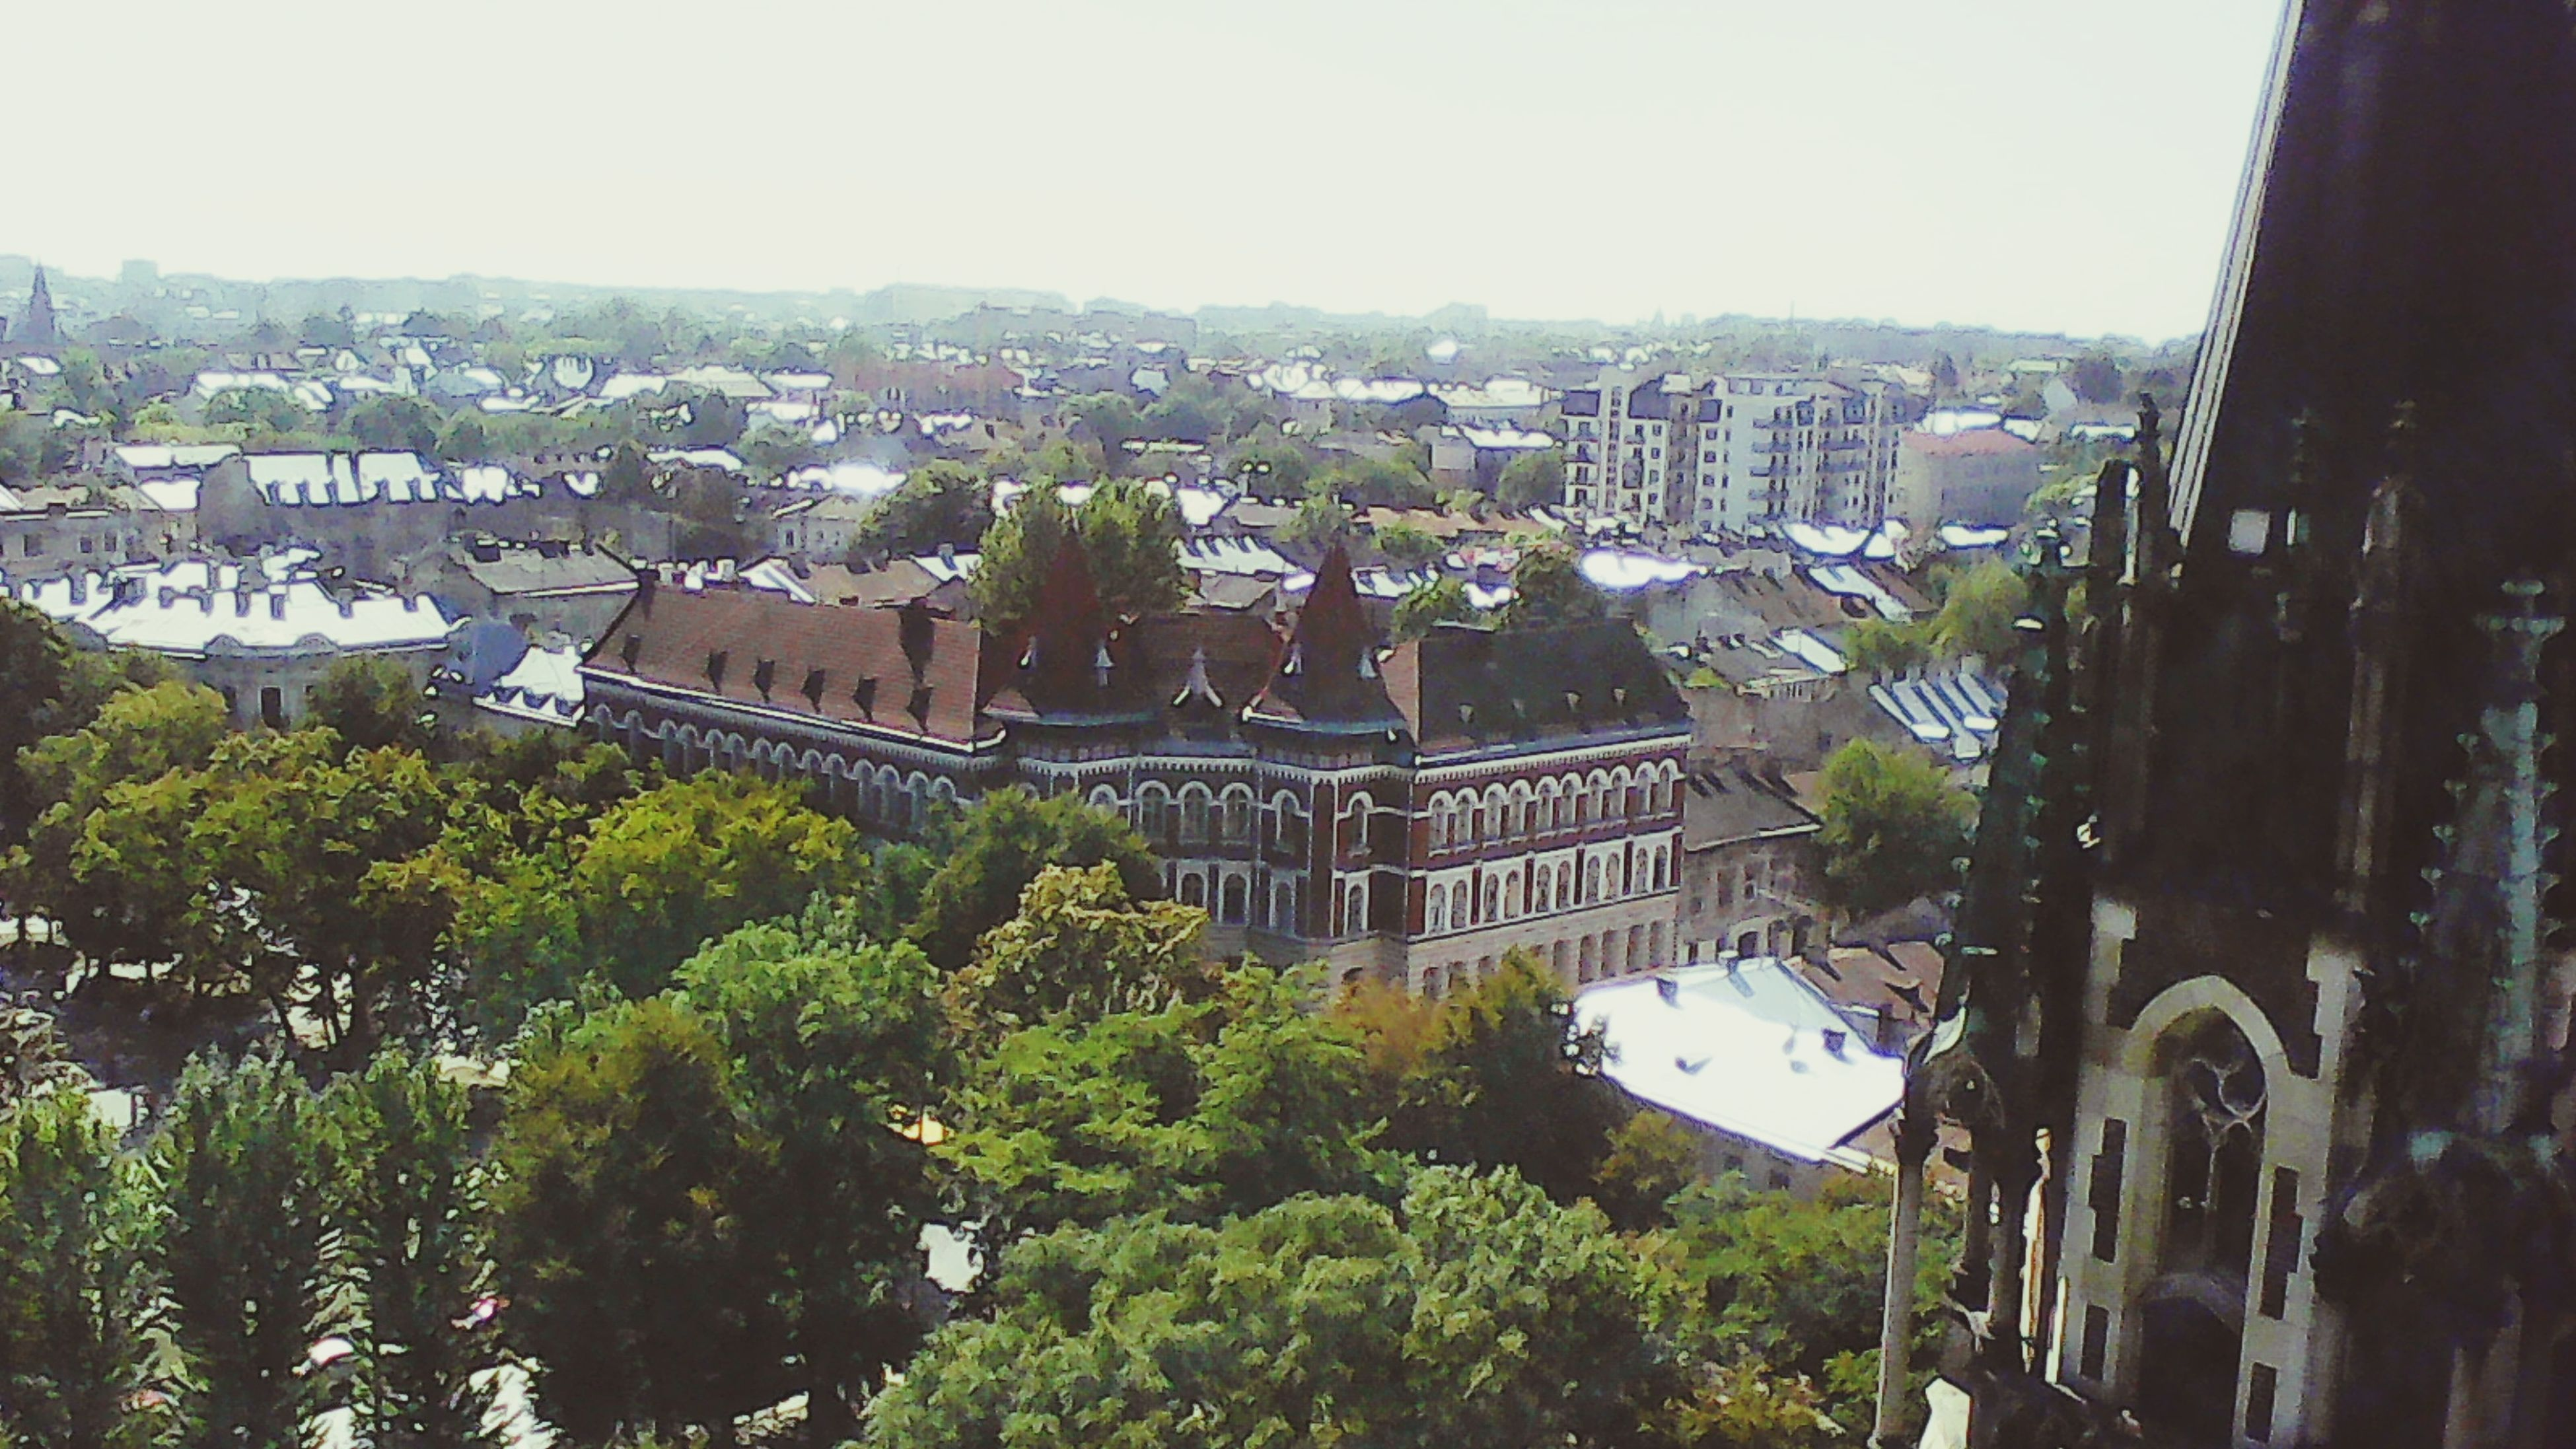 tree, architecture, built structure, building exterior, high angle view, city, cityscape, crowded, clear sky, city life, sky, day, canal, green color, no people, outdoors, residential district, mountain, urban scene, town, history, mountain range